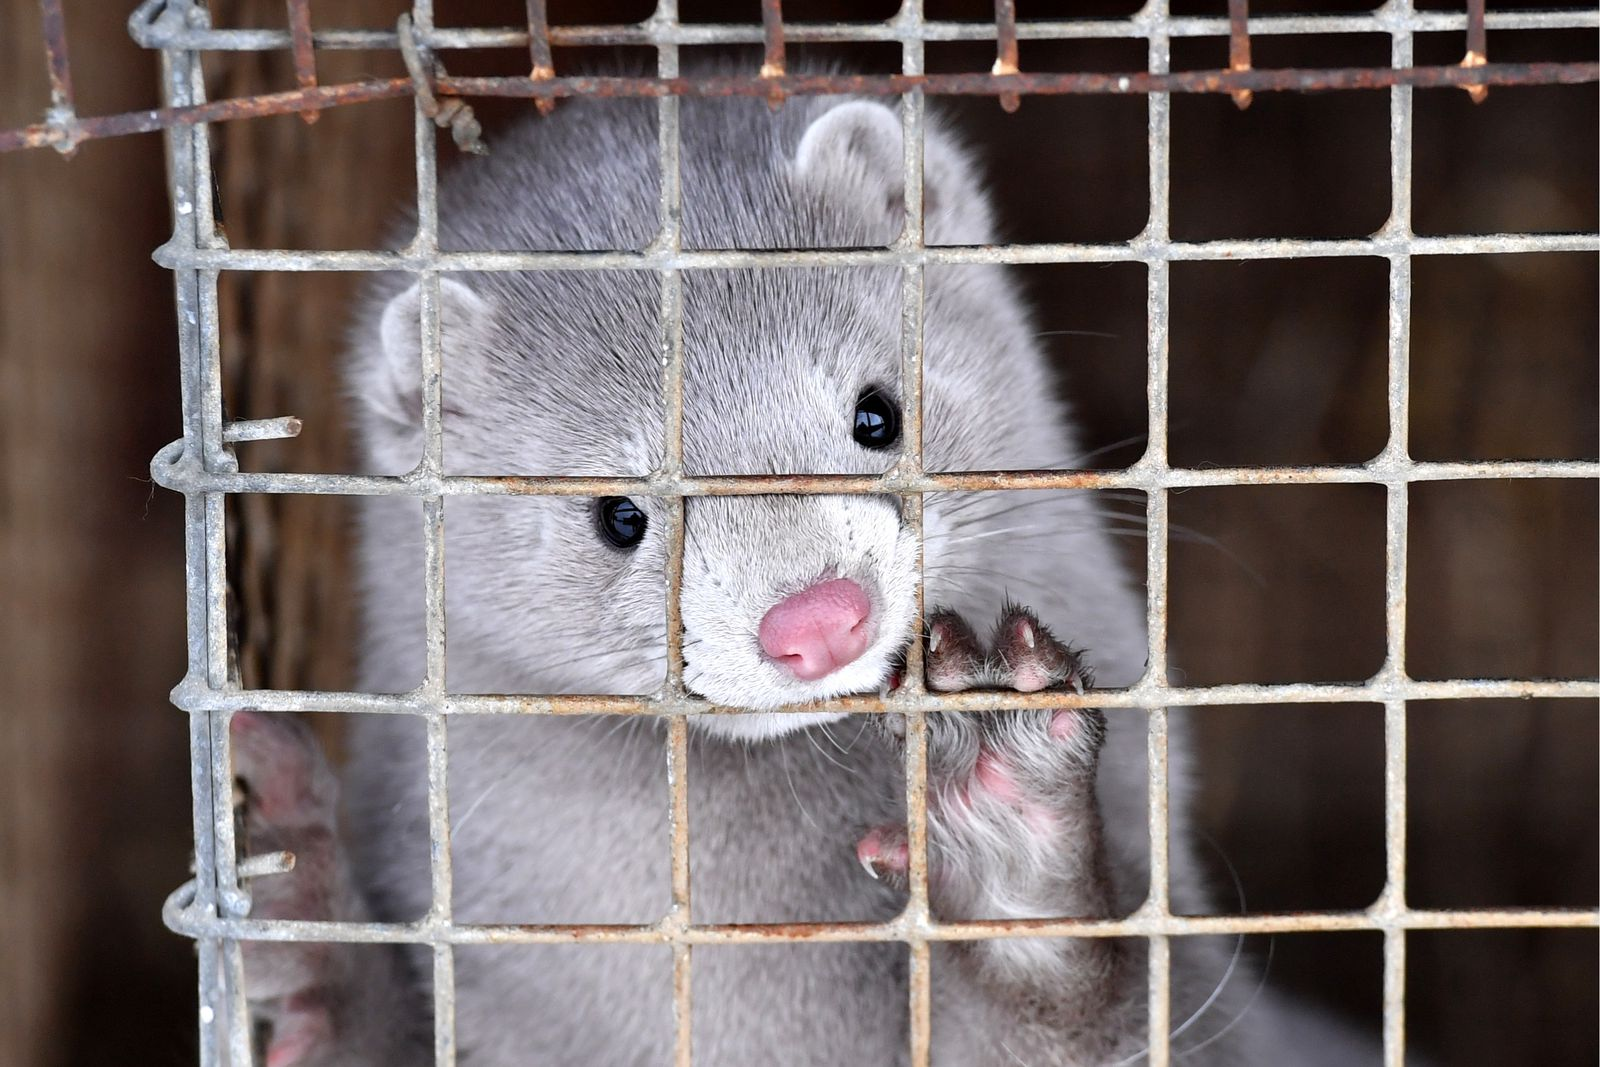 Covid 19 Reaches Mink Farms In Utah Smart News Smithsonian Magazine